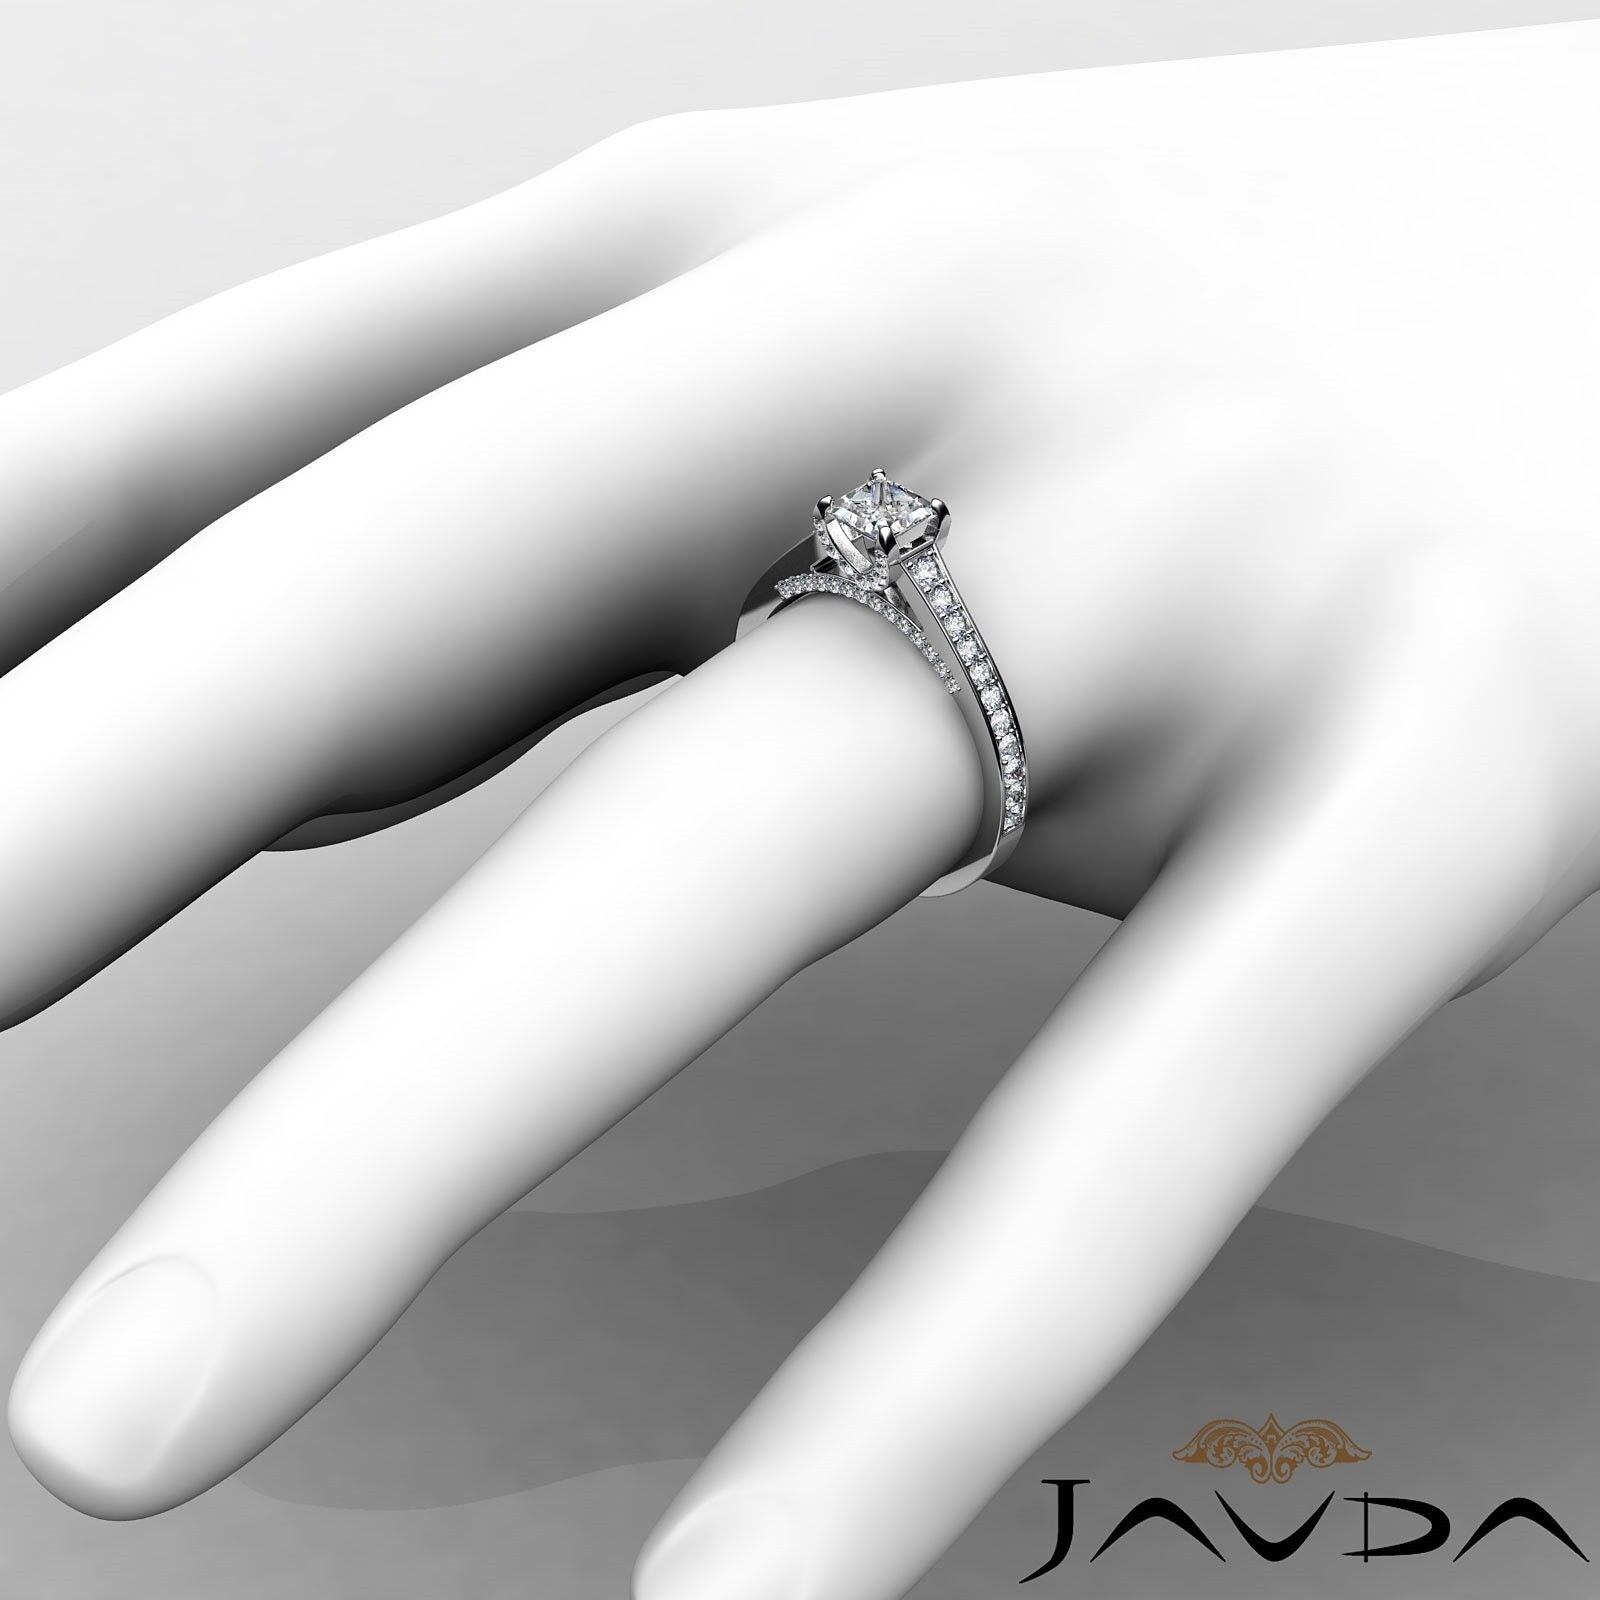 1.46ctw Tapered Pave Princess Diamond Engagement Ring GIA G-VS2 White Gold Rings 2